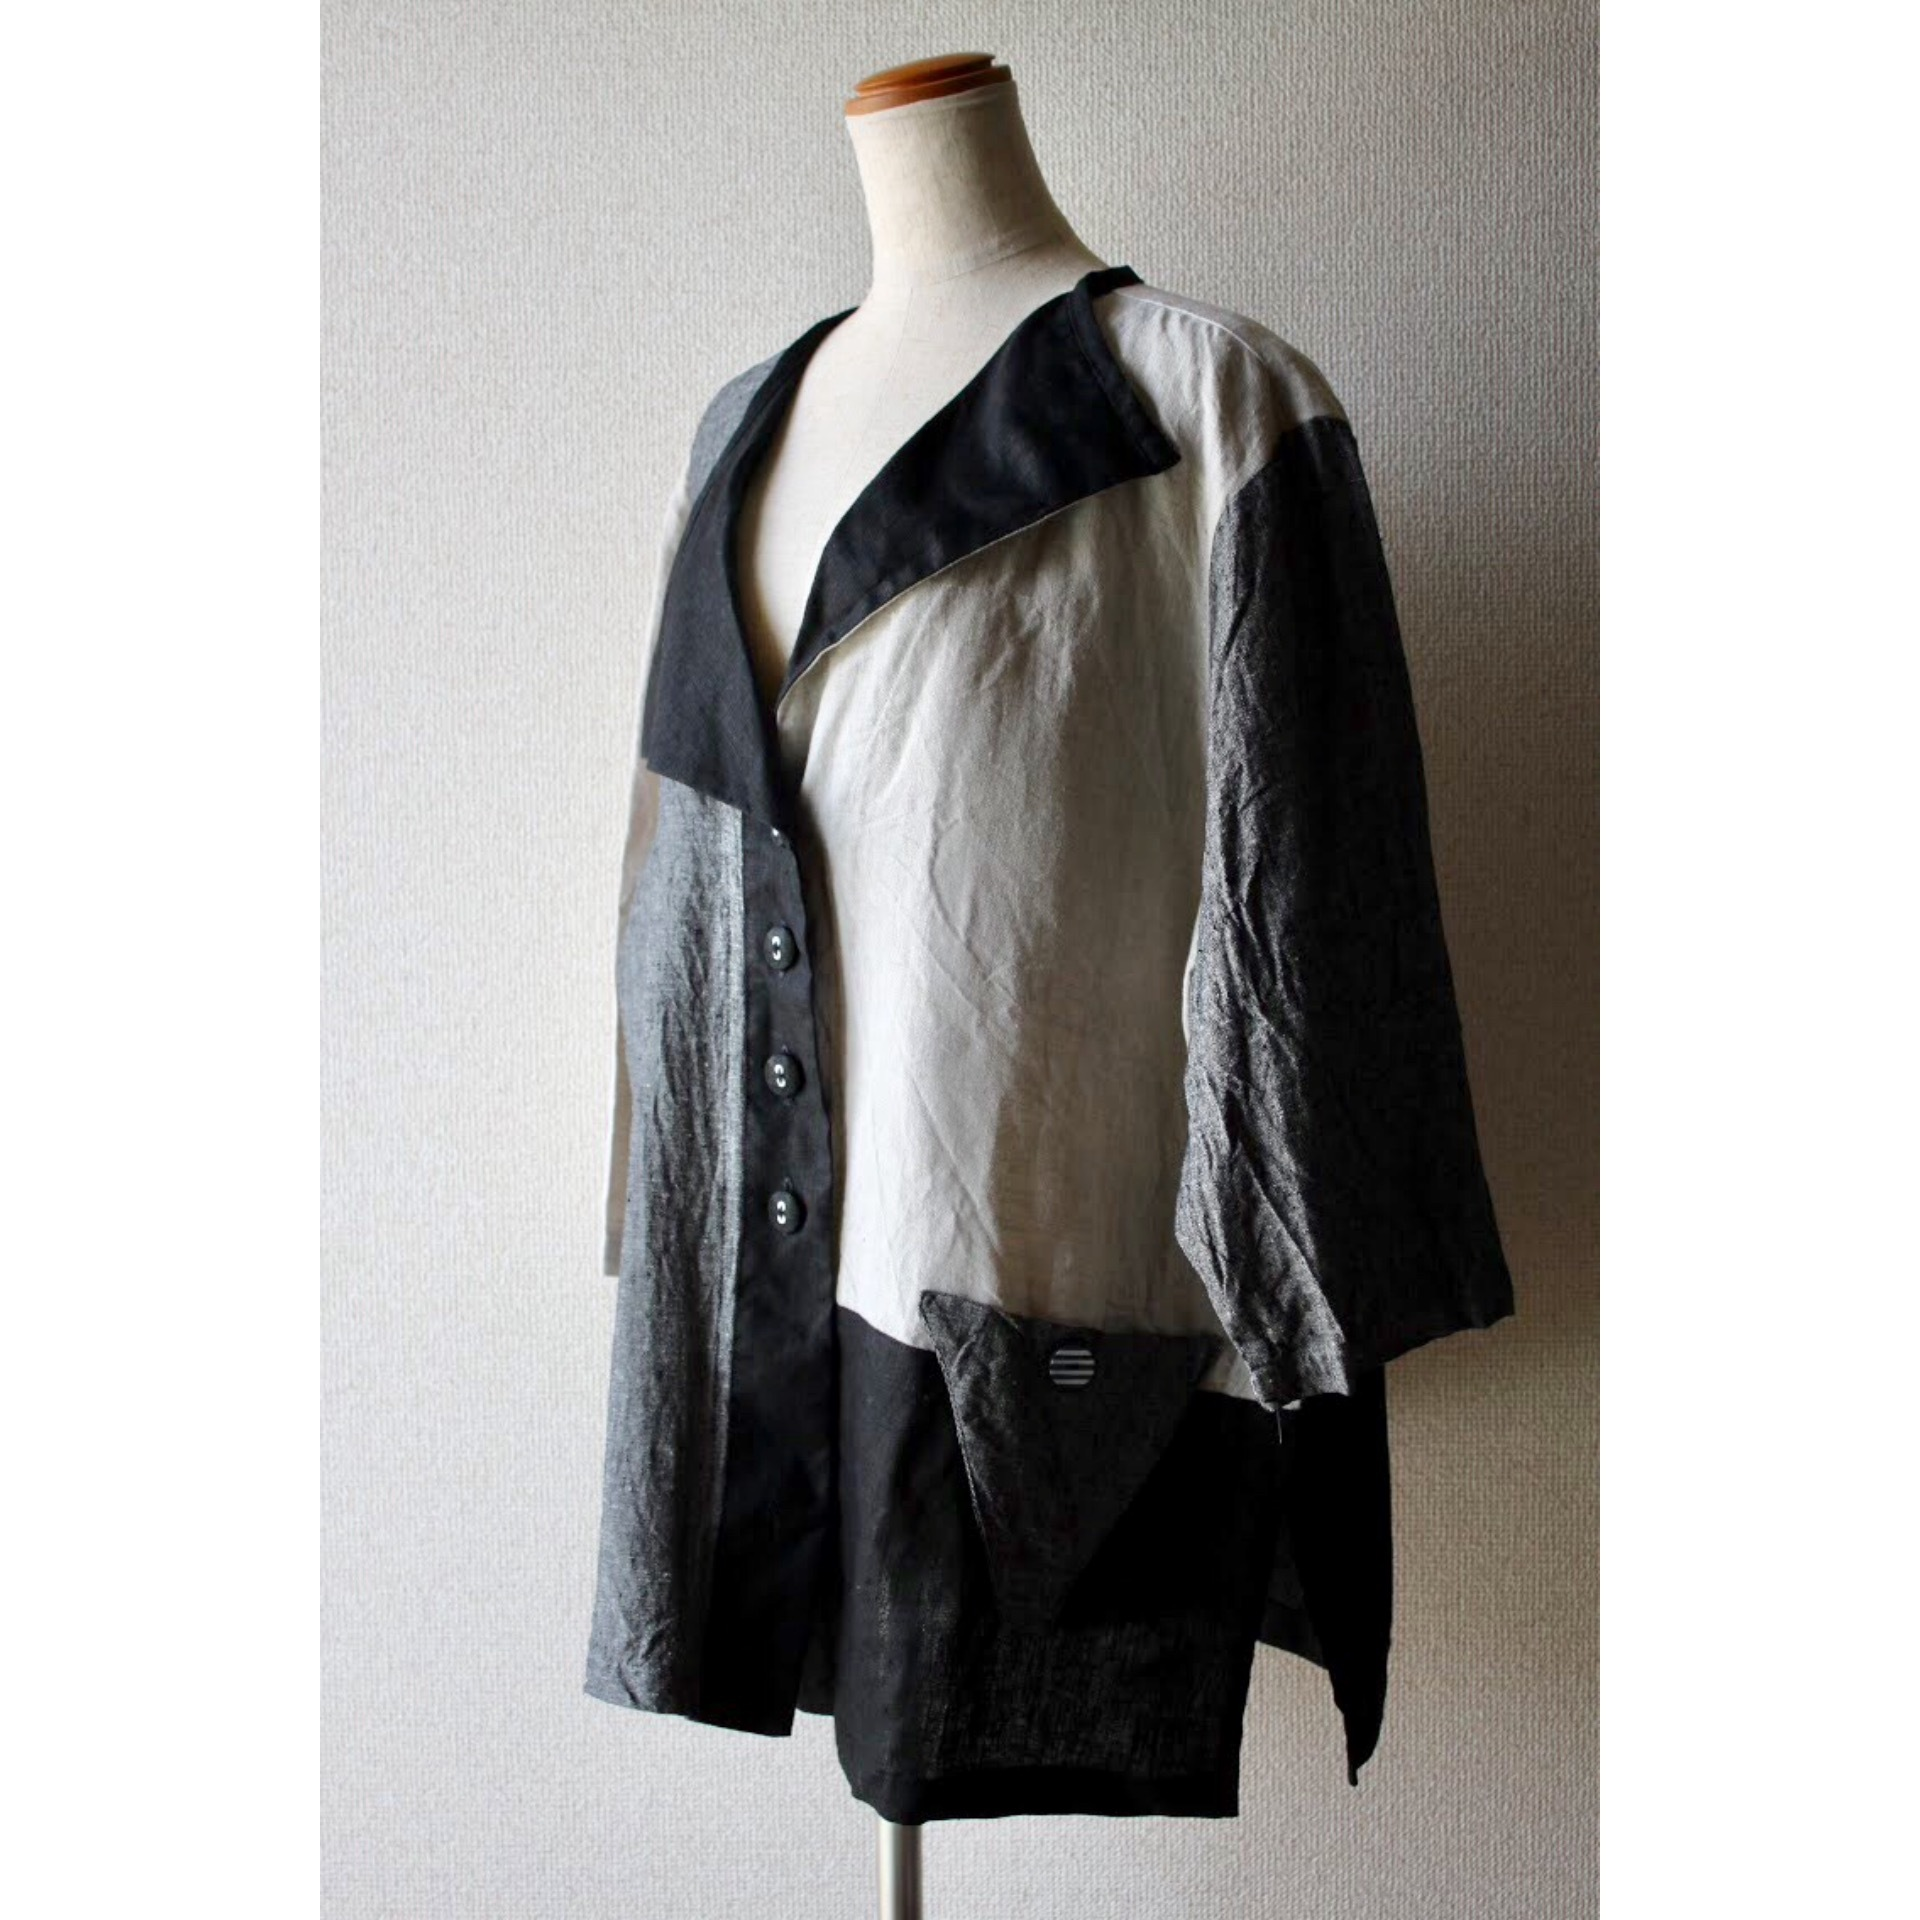 Vintage crazy pattern linen jacket